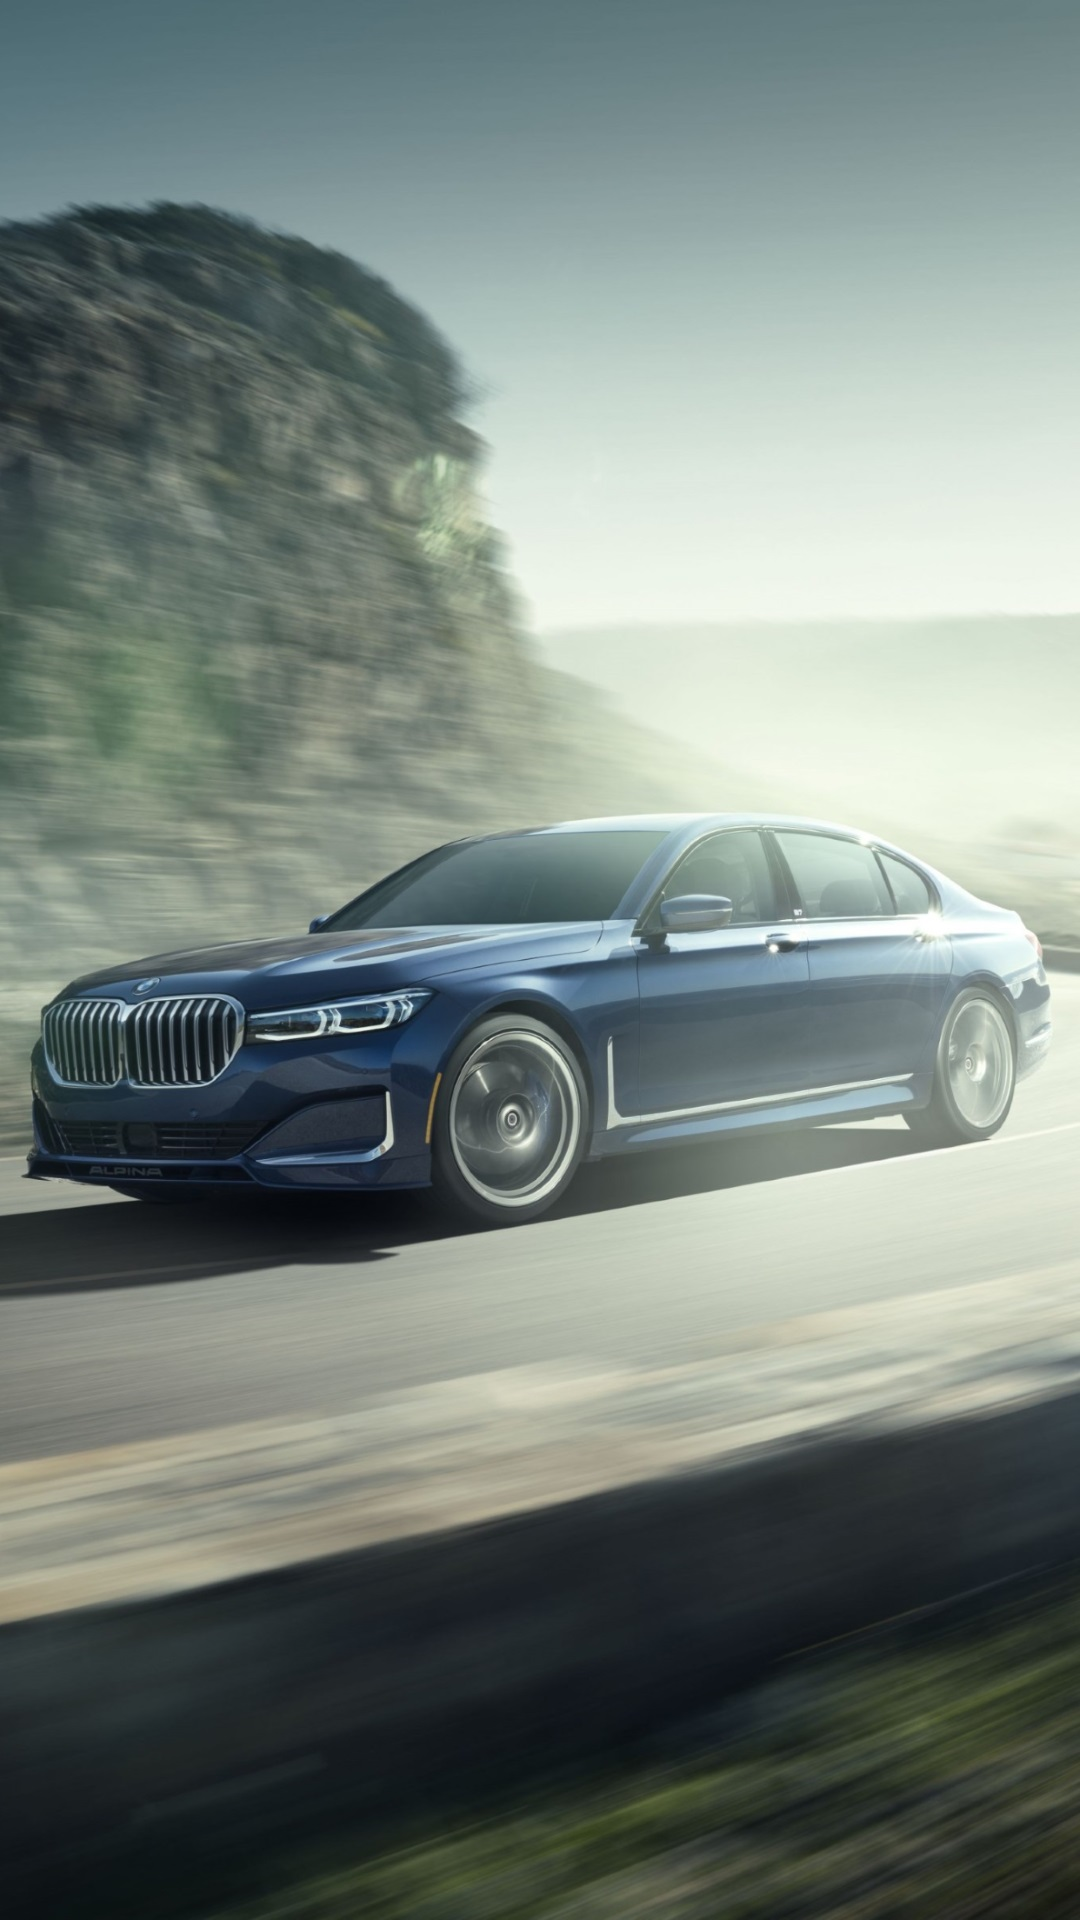 BMW Alpina B7 2019 wallpaper 1080x1920